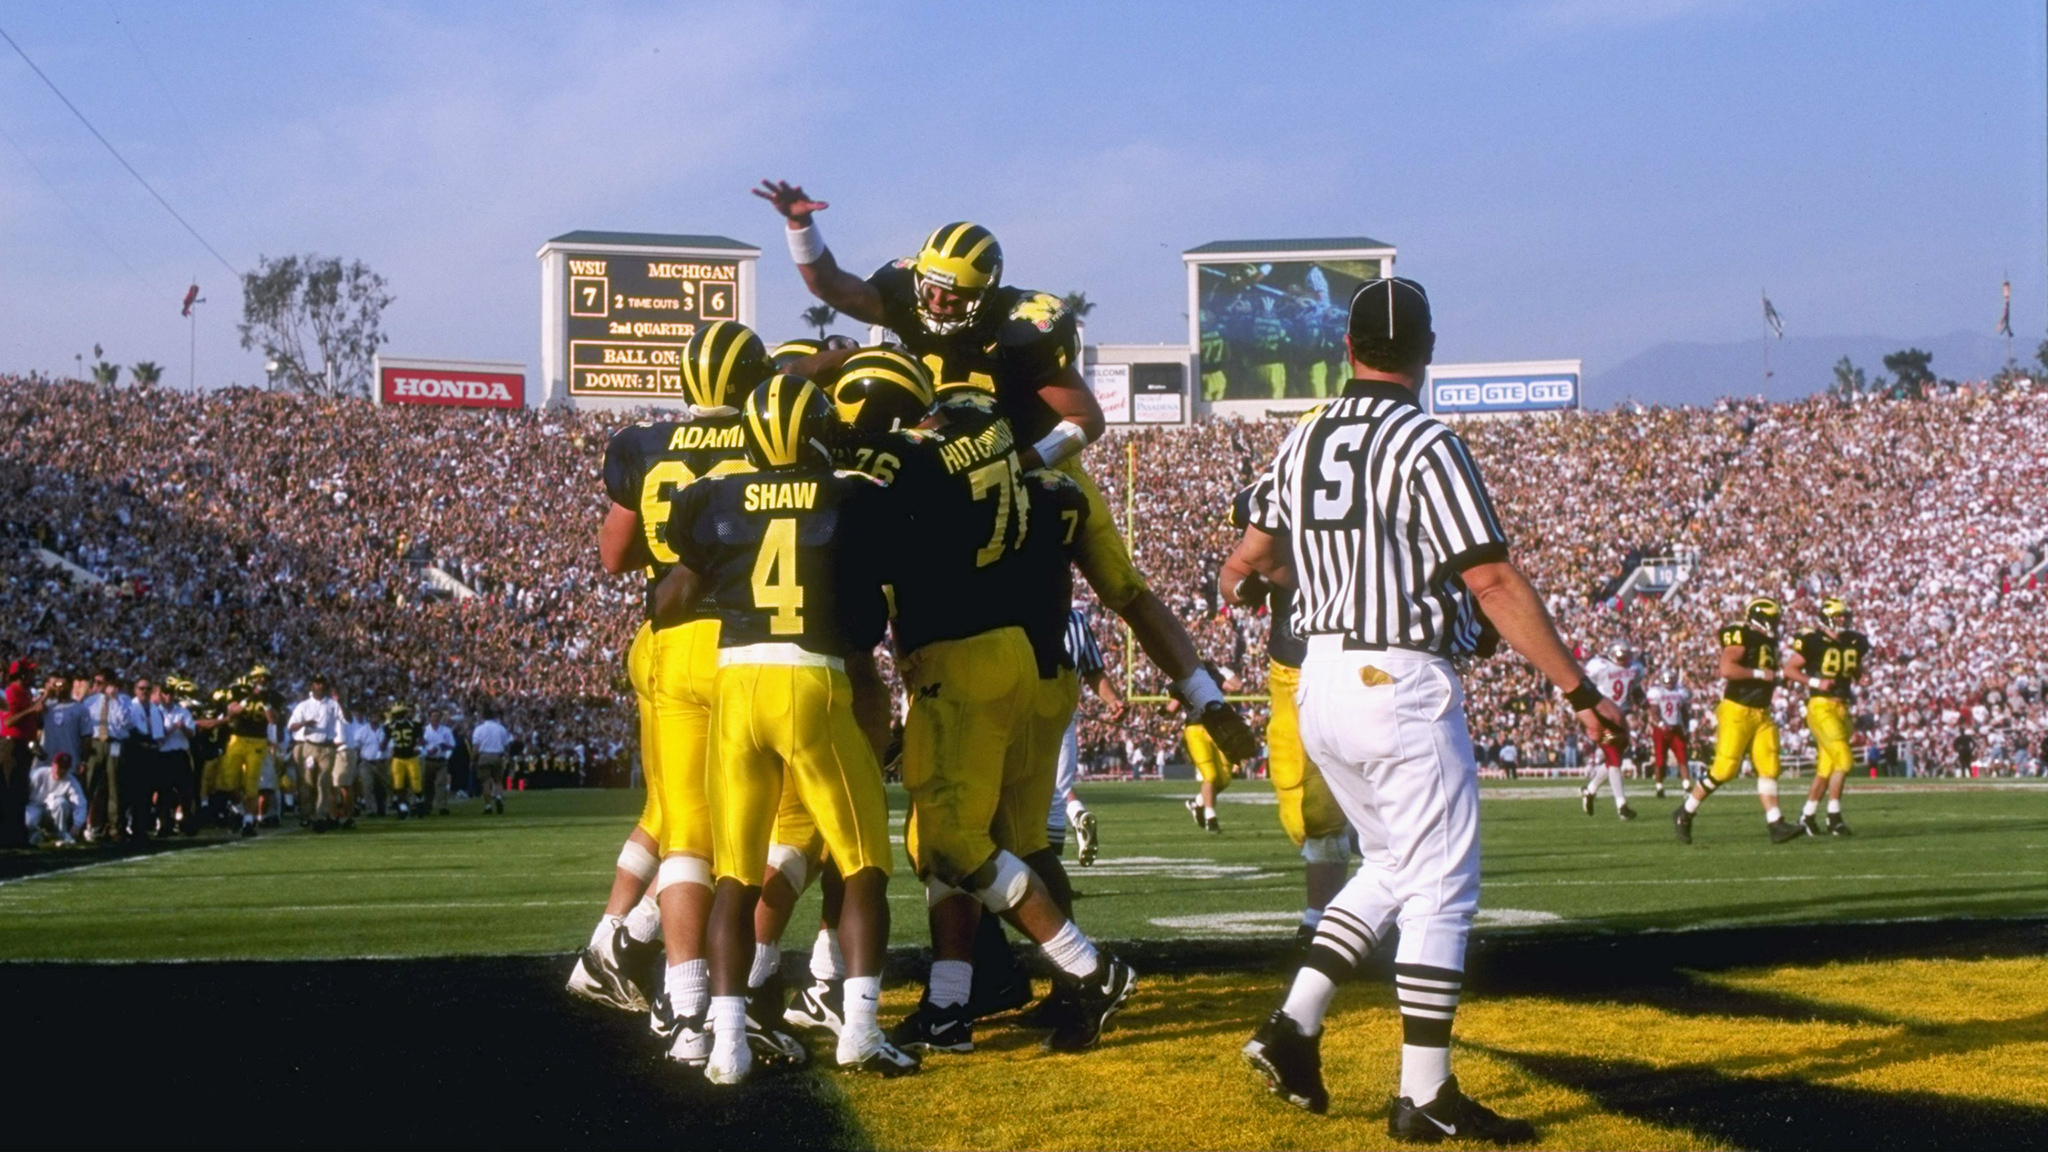 Quarterback and MVP Brian Griese celebrates with the Michigan Wolverines after they won the 1998 Rose Bowl and a share of the 1997 NCAA national championship. Brian's father, NFL Hall of Famer Bob Griese, commentated the game on national television.